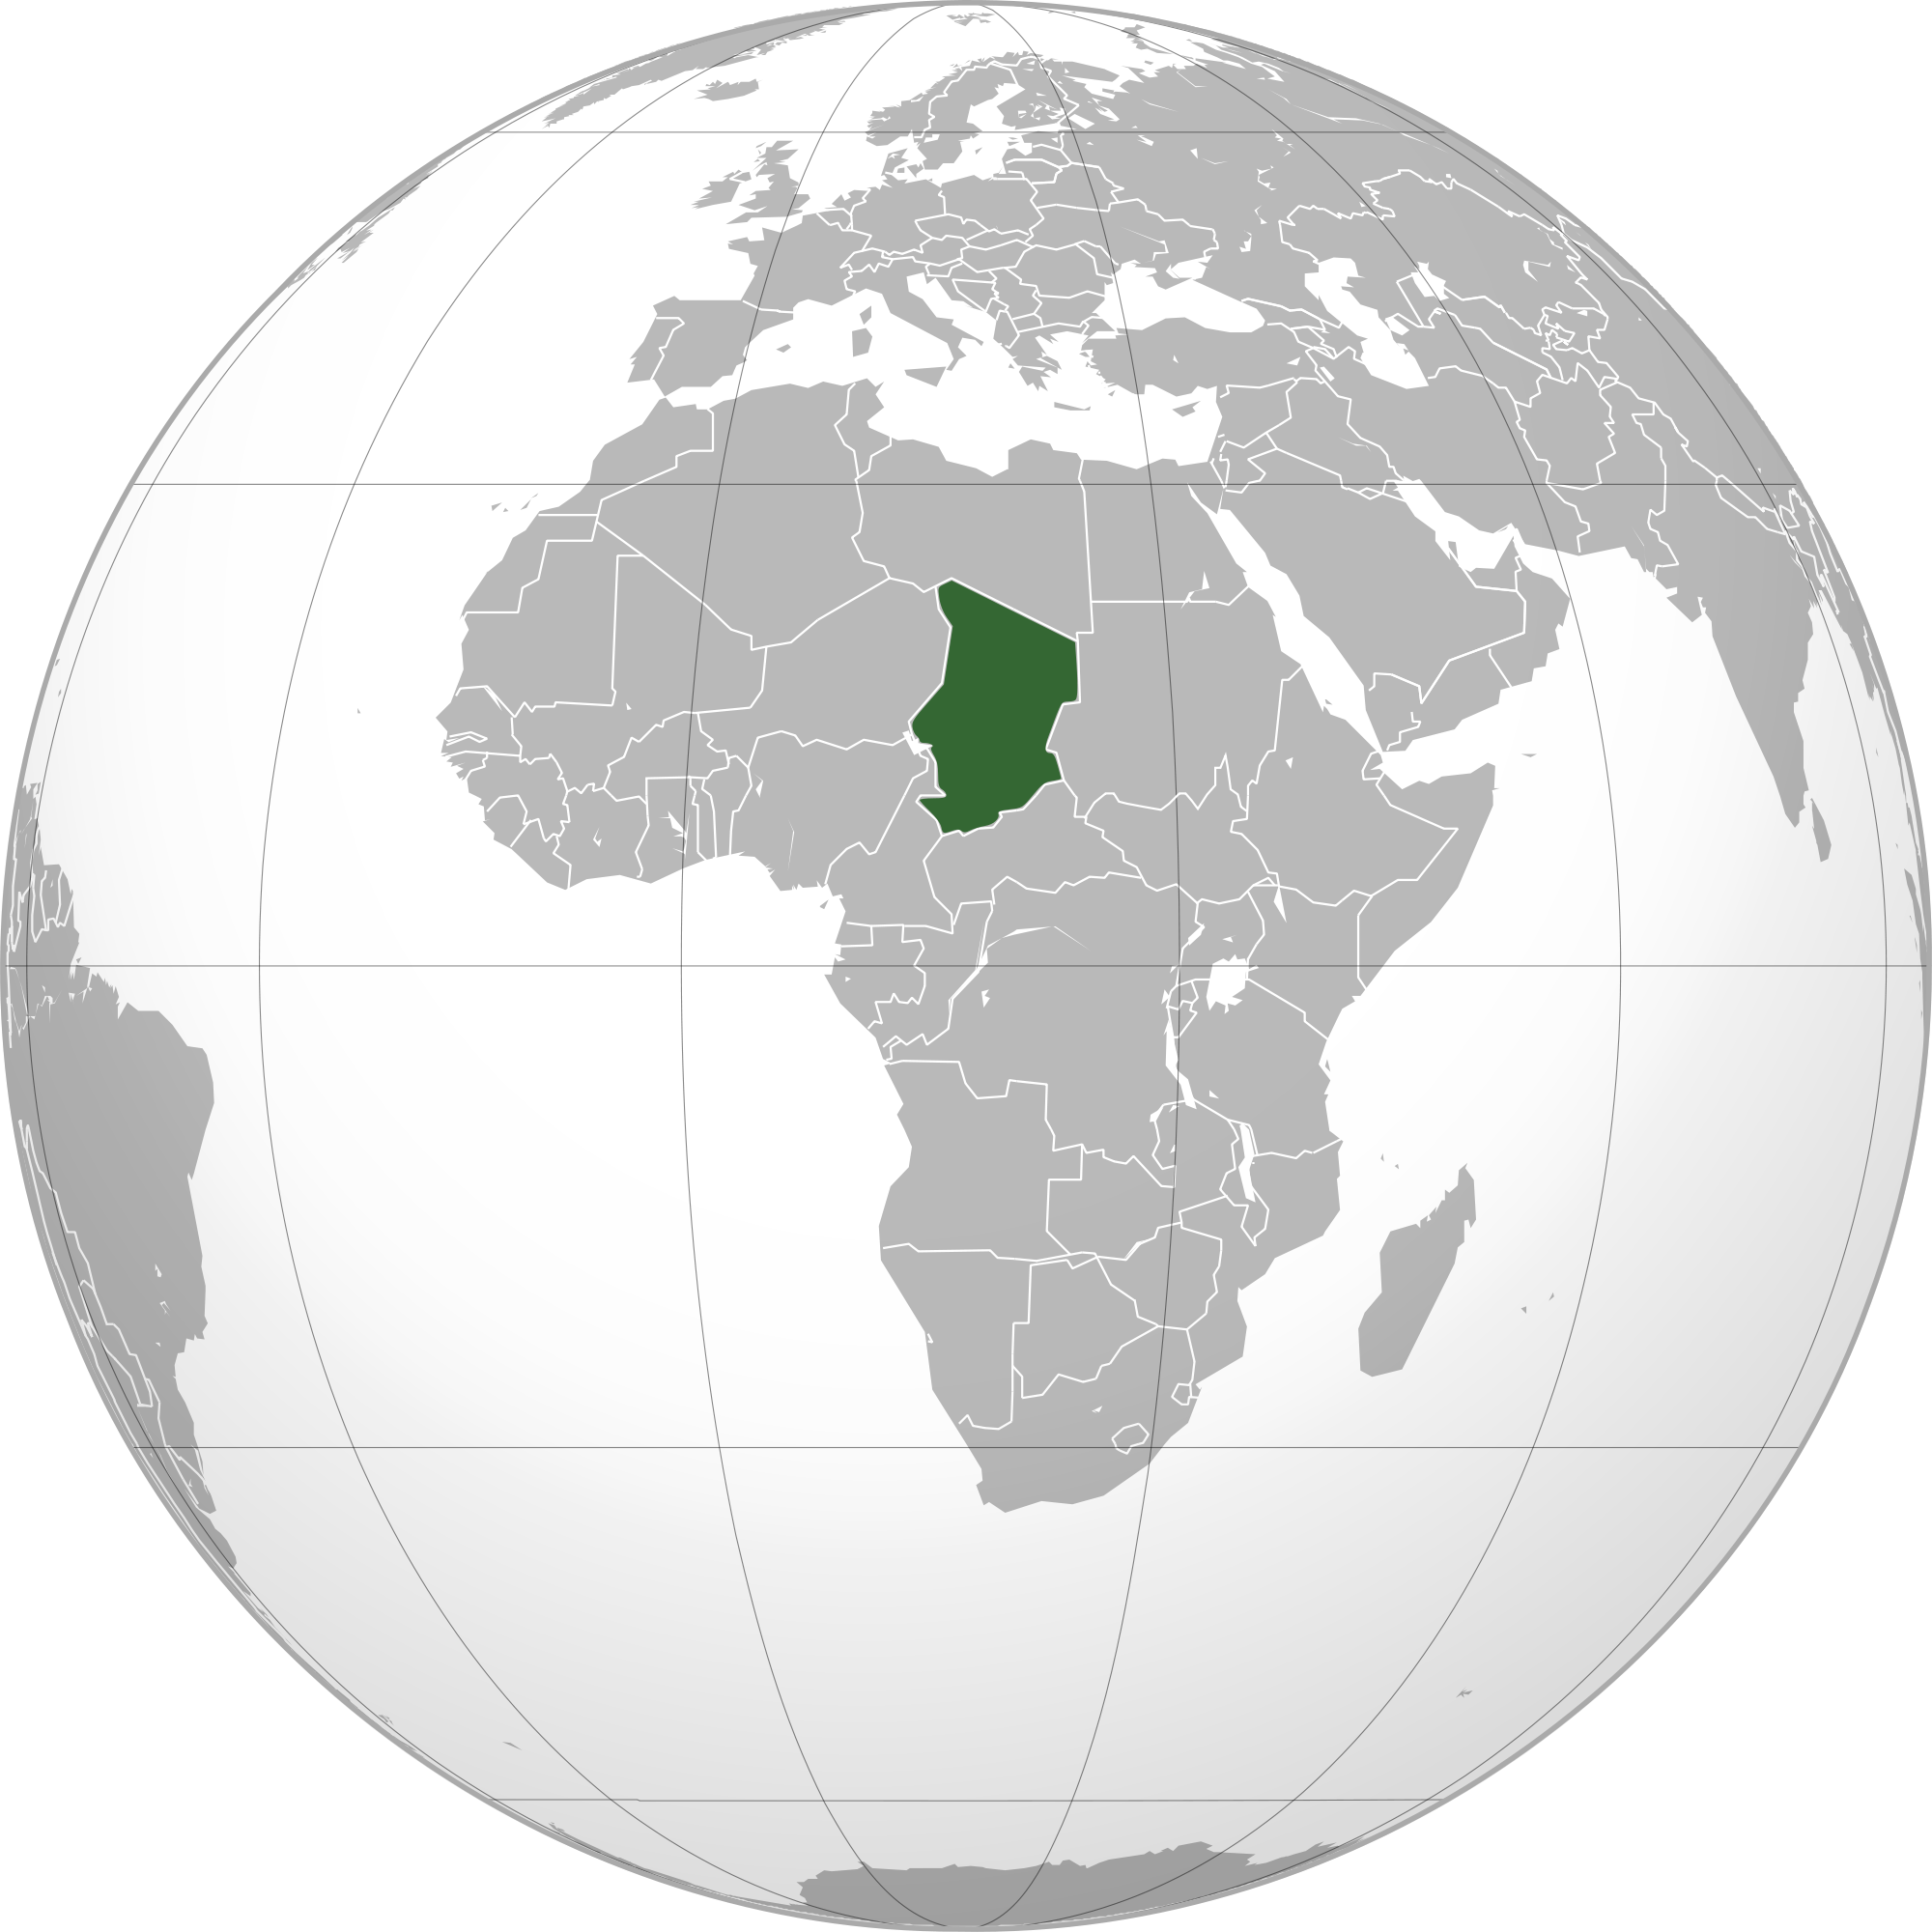 Location of the Chad in the World Map